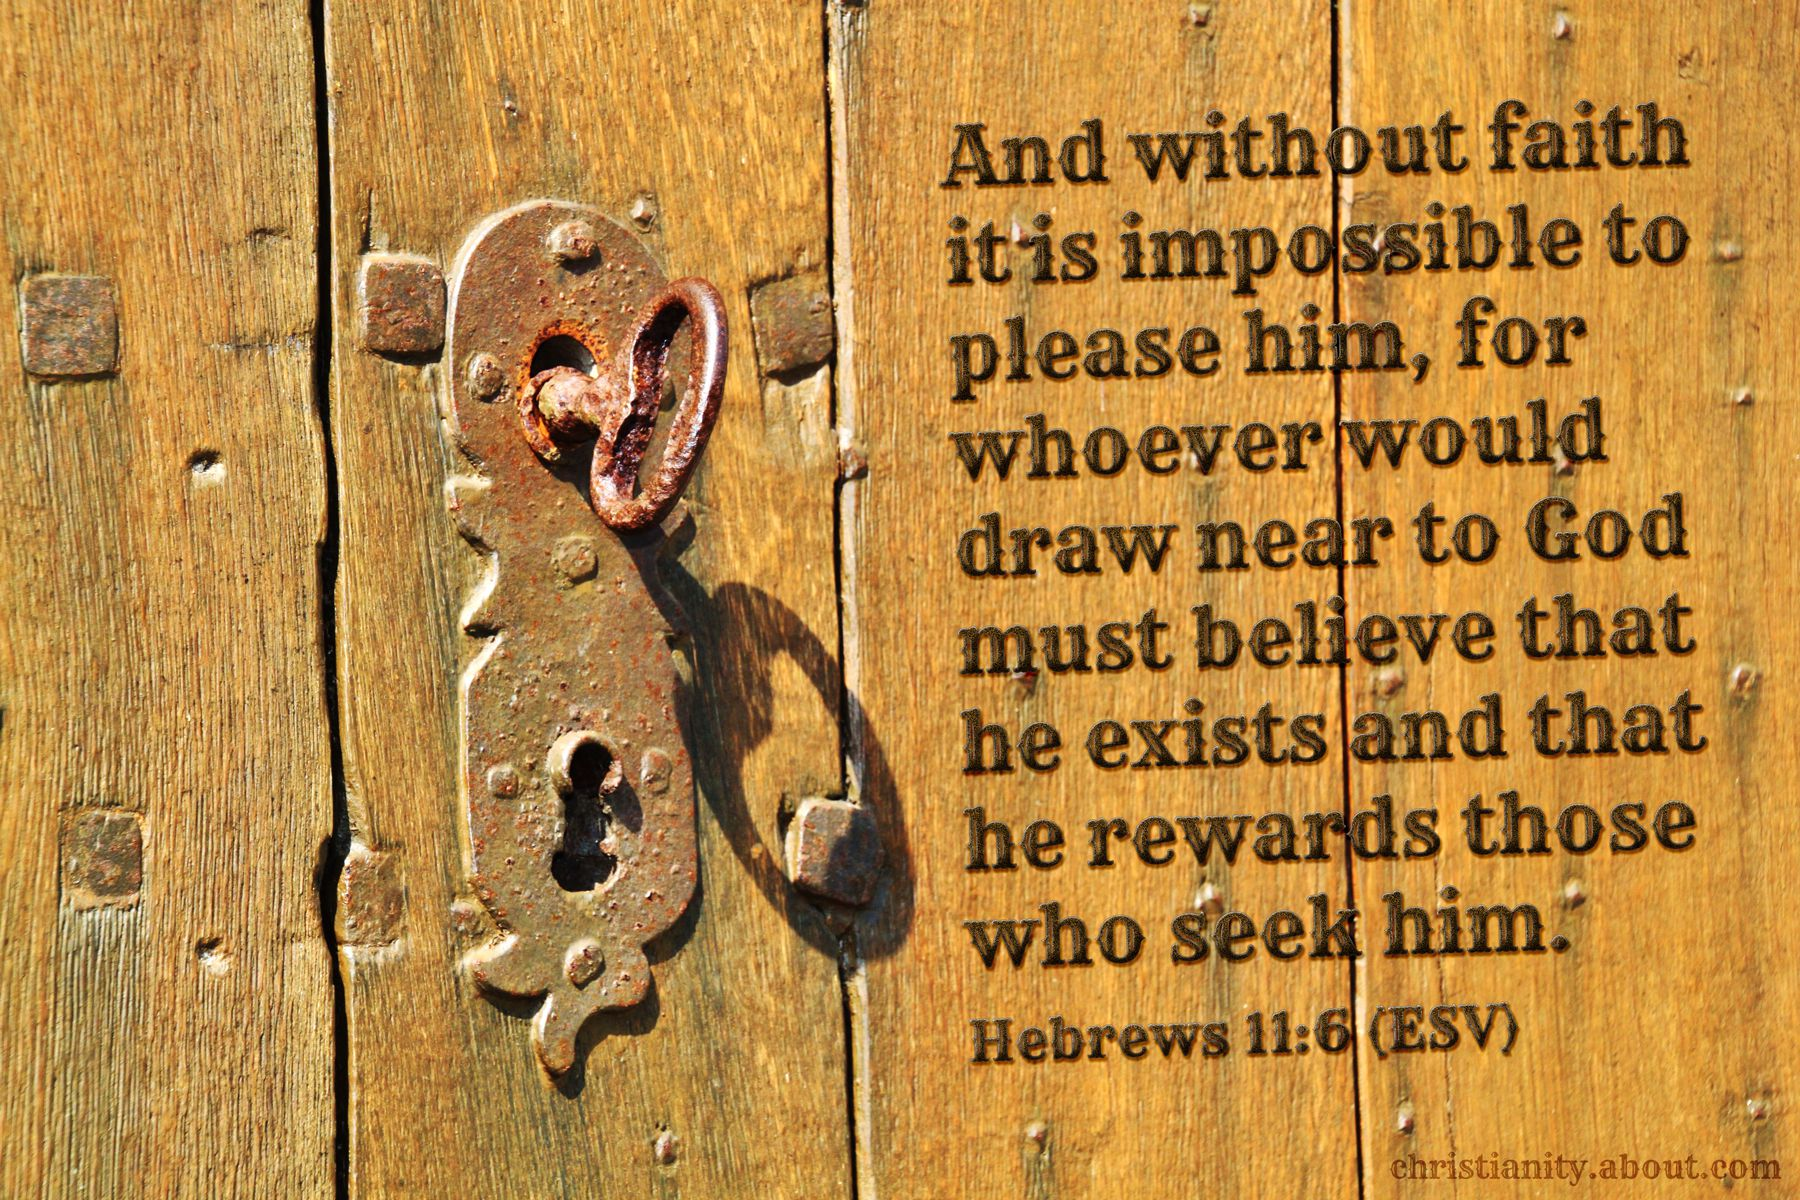 faith is the key - hebrews 11:6 - scripture of the day